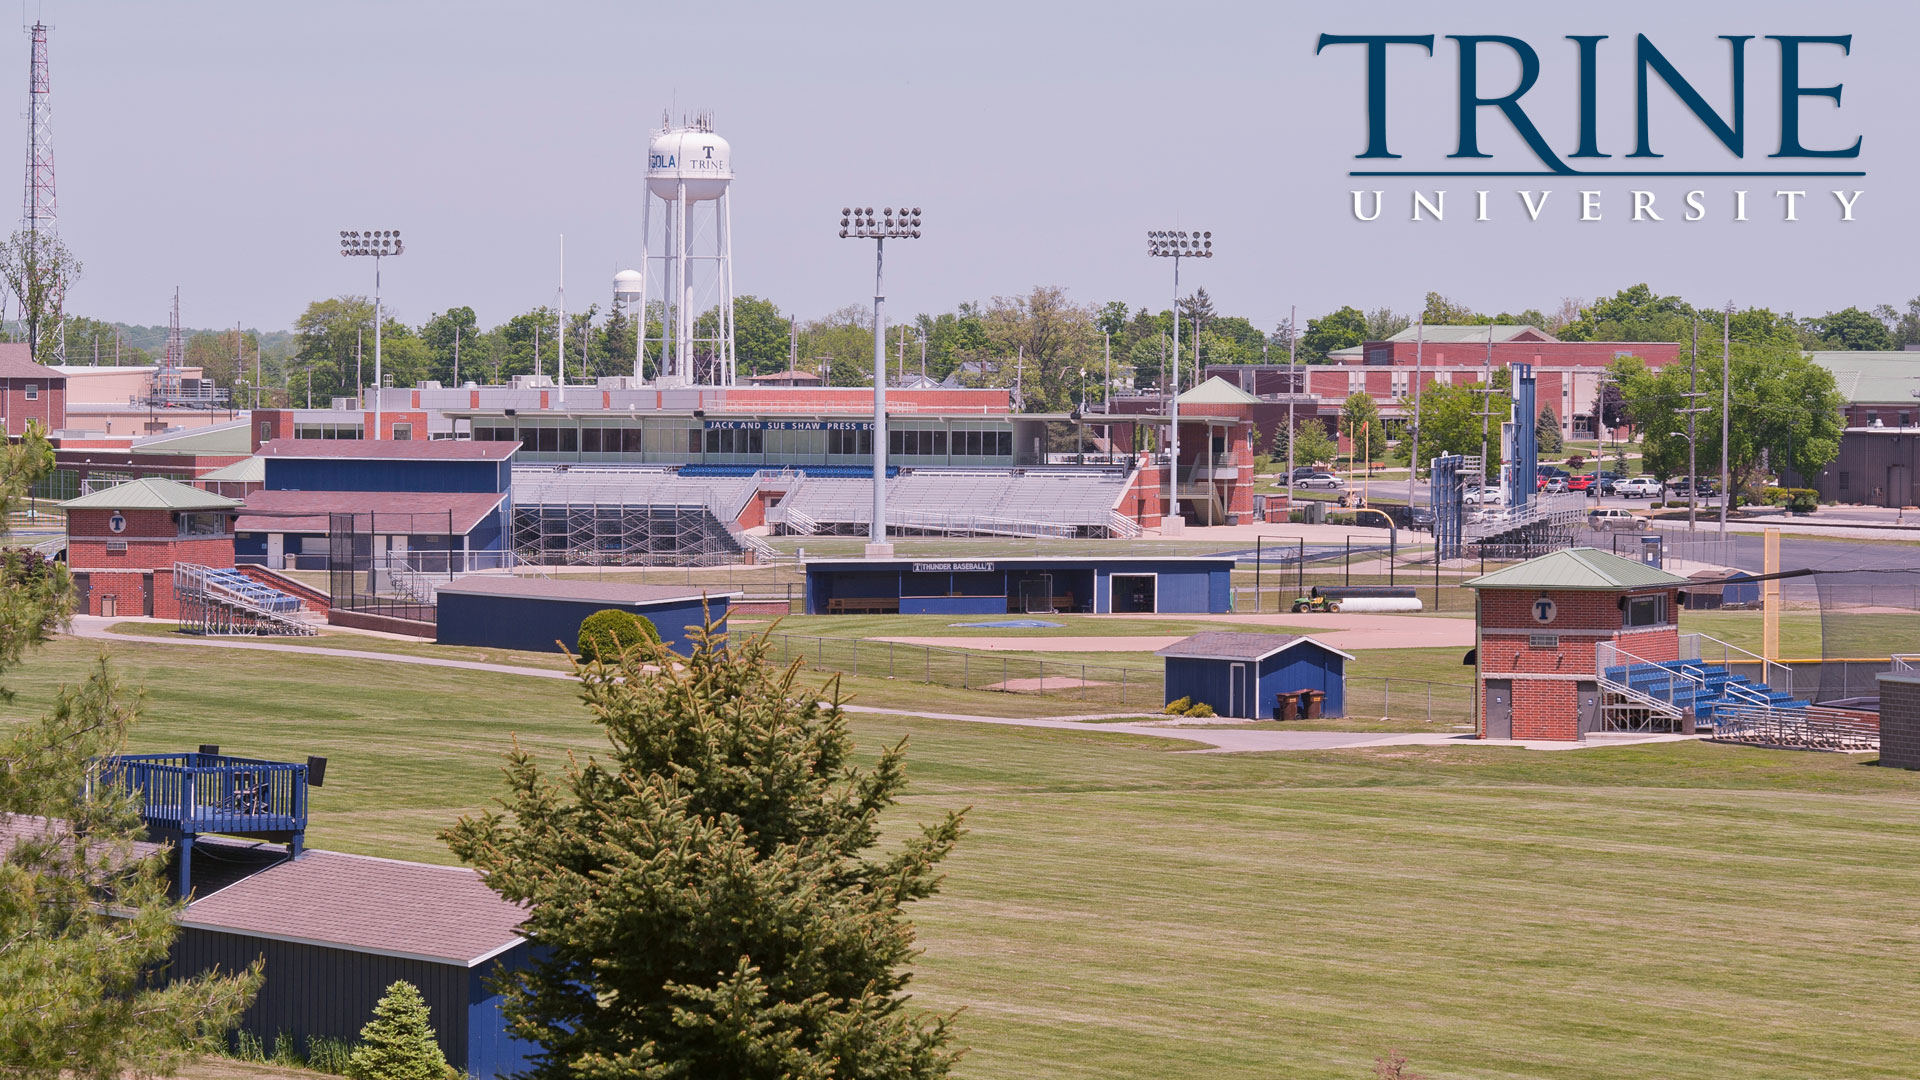 Softball, Baseball and Football fields at Trine